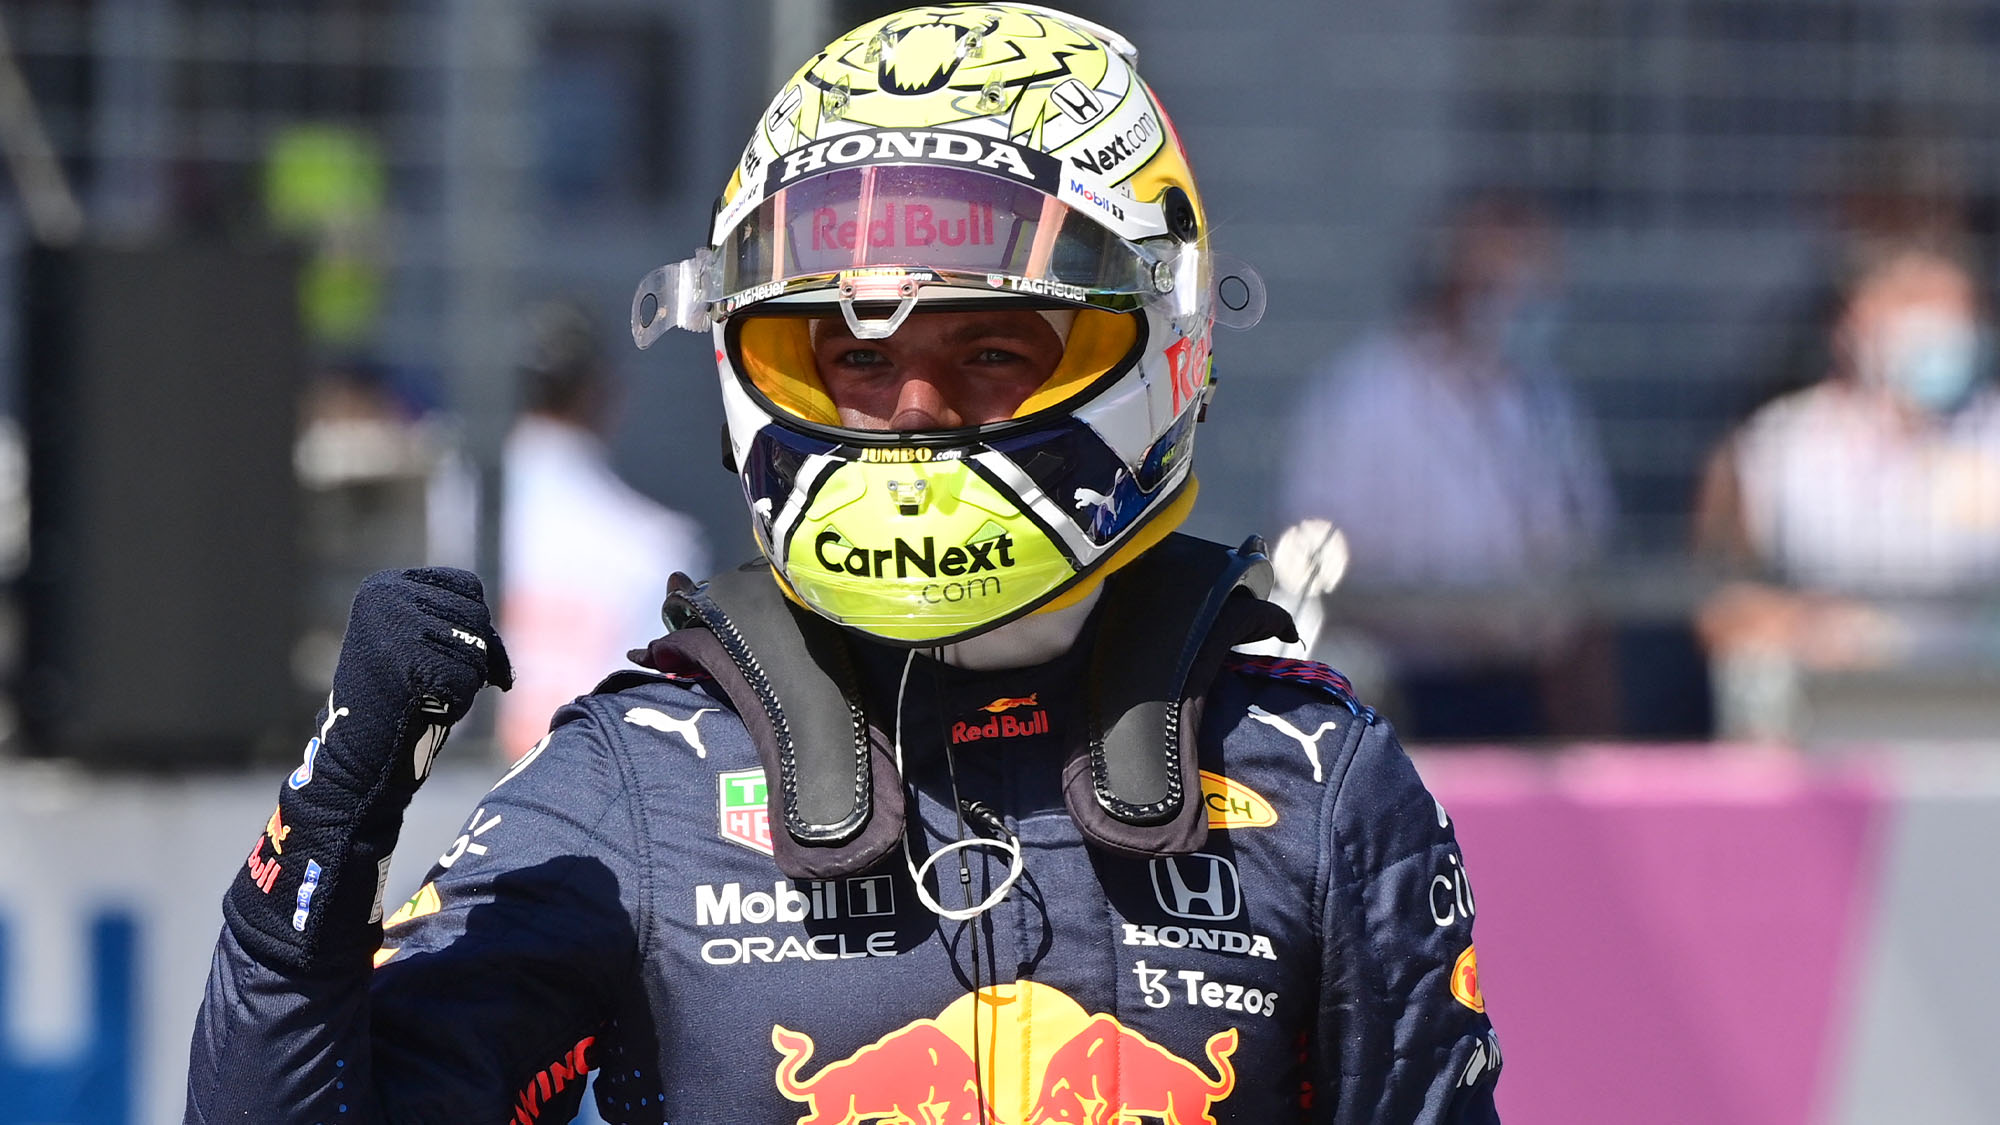 Red Bull's Dutch driver Max Verstappen celebrates after taking the pole position after the qualifying session at the Red Bull Ring race track in Spielberg, Austria, on June 26, 2021, ahead of the Formula One Styrian Grand Prix. (Photo by ANDREJ ISAKOVIC / AFP) (Photo by ANDREJ ISAKOVIC/AFP via Getty Images)